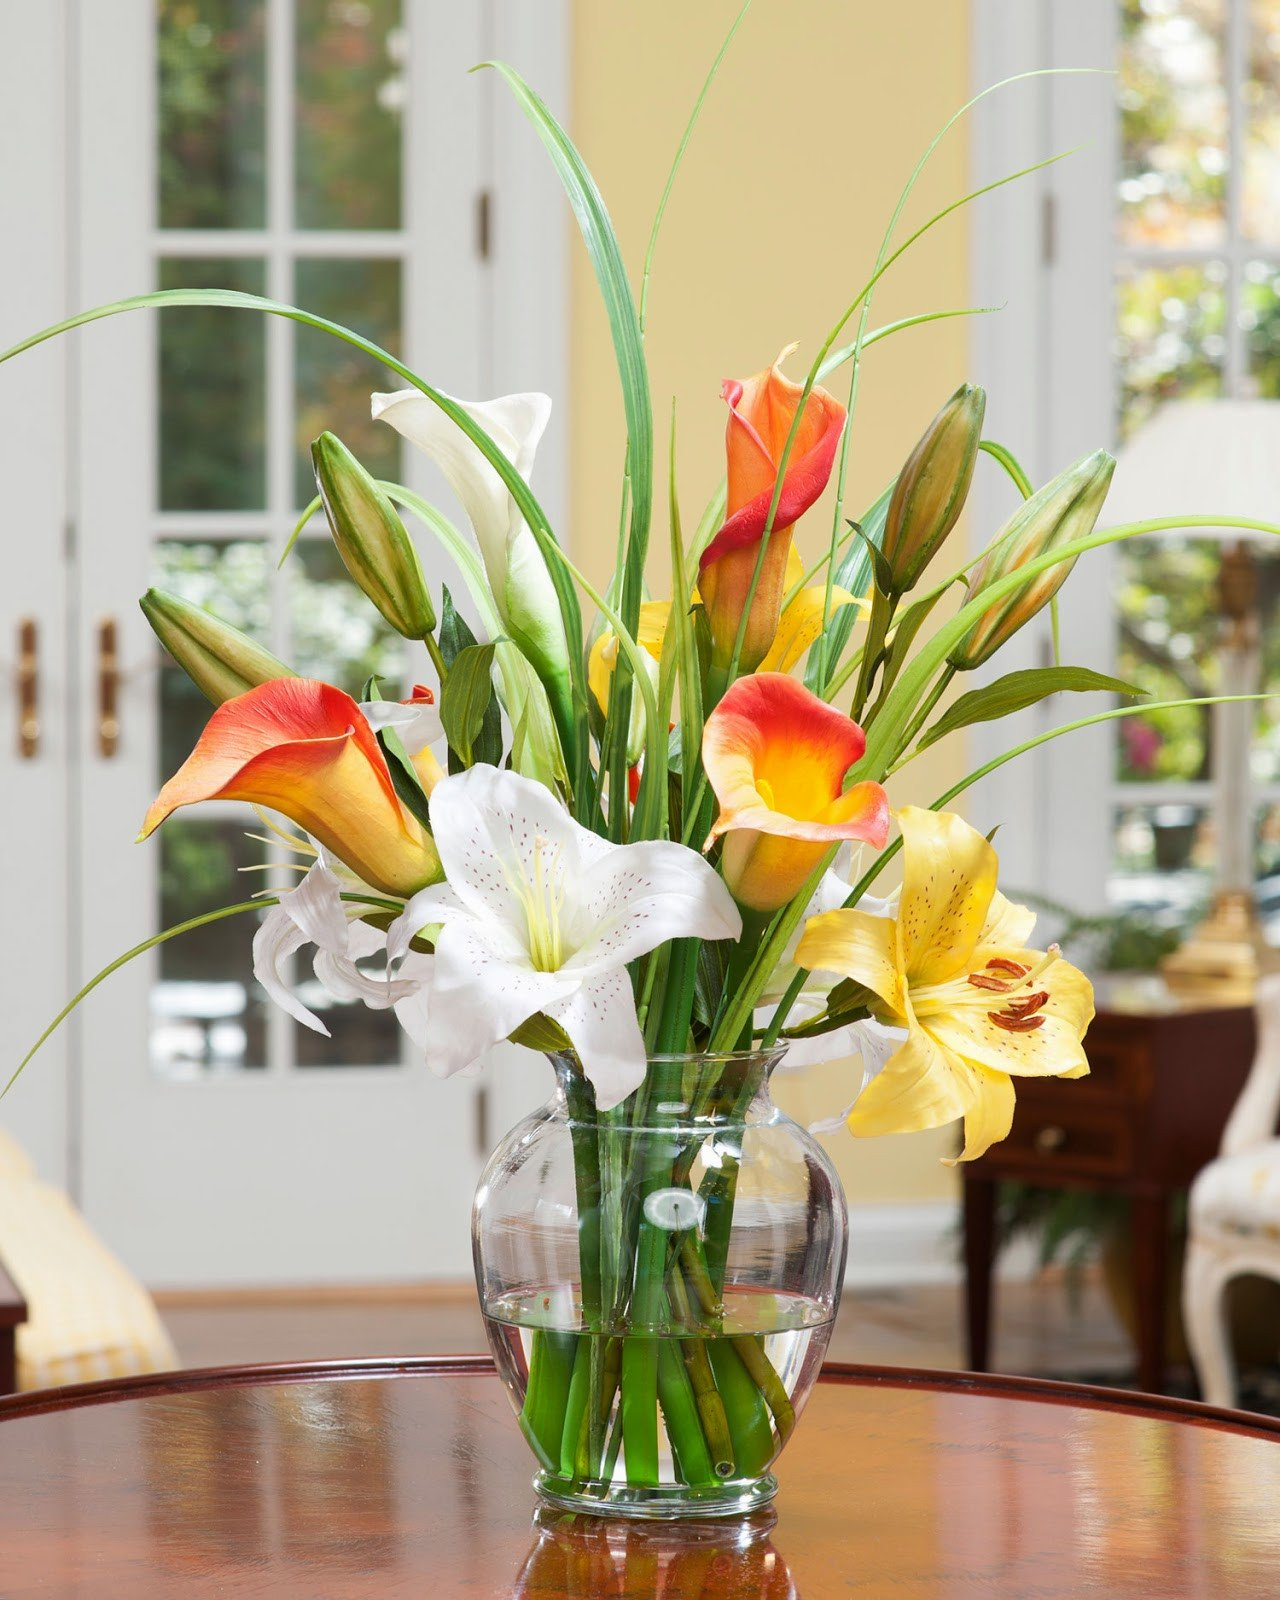 Flower Arrangements for Home Decor Lovely House Decor Flowers